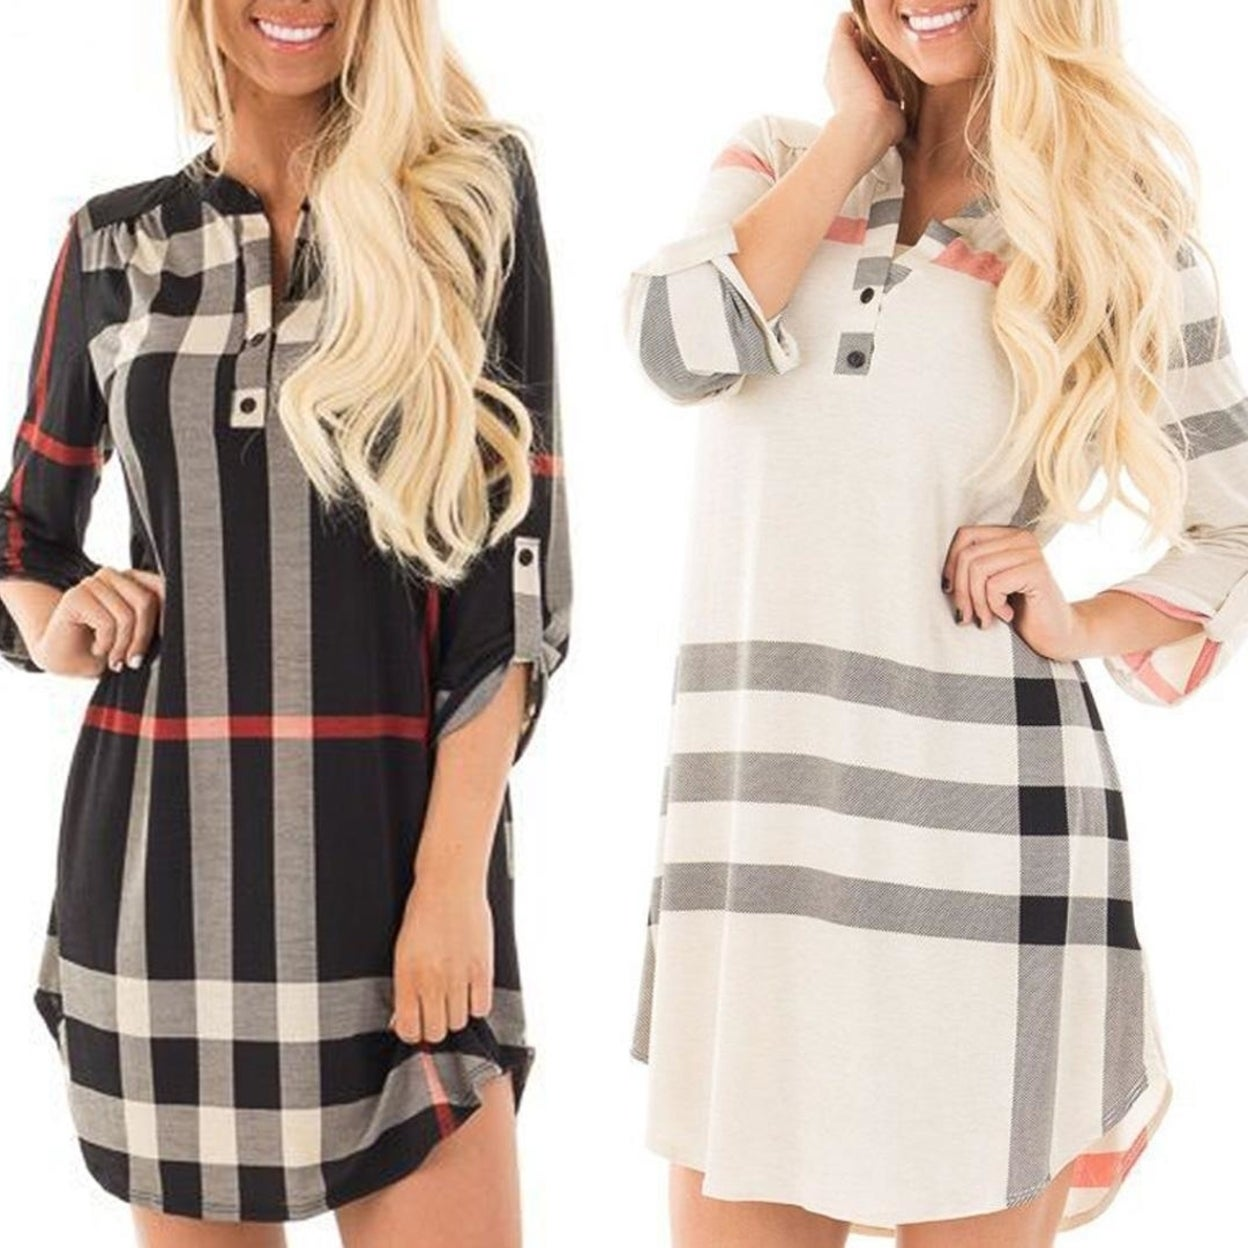 0884083e15 Shop Londonite Shirt In Playful Plaids - Free Shipping On Orders ...